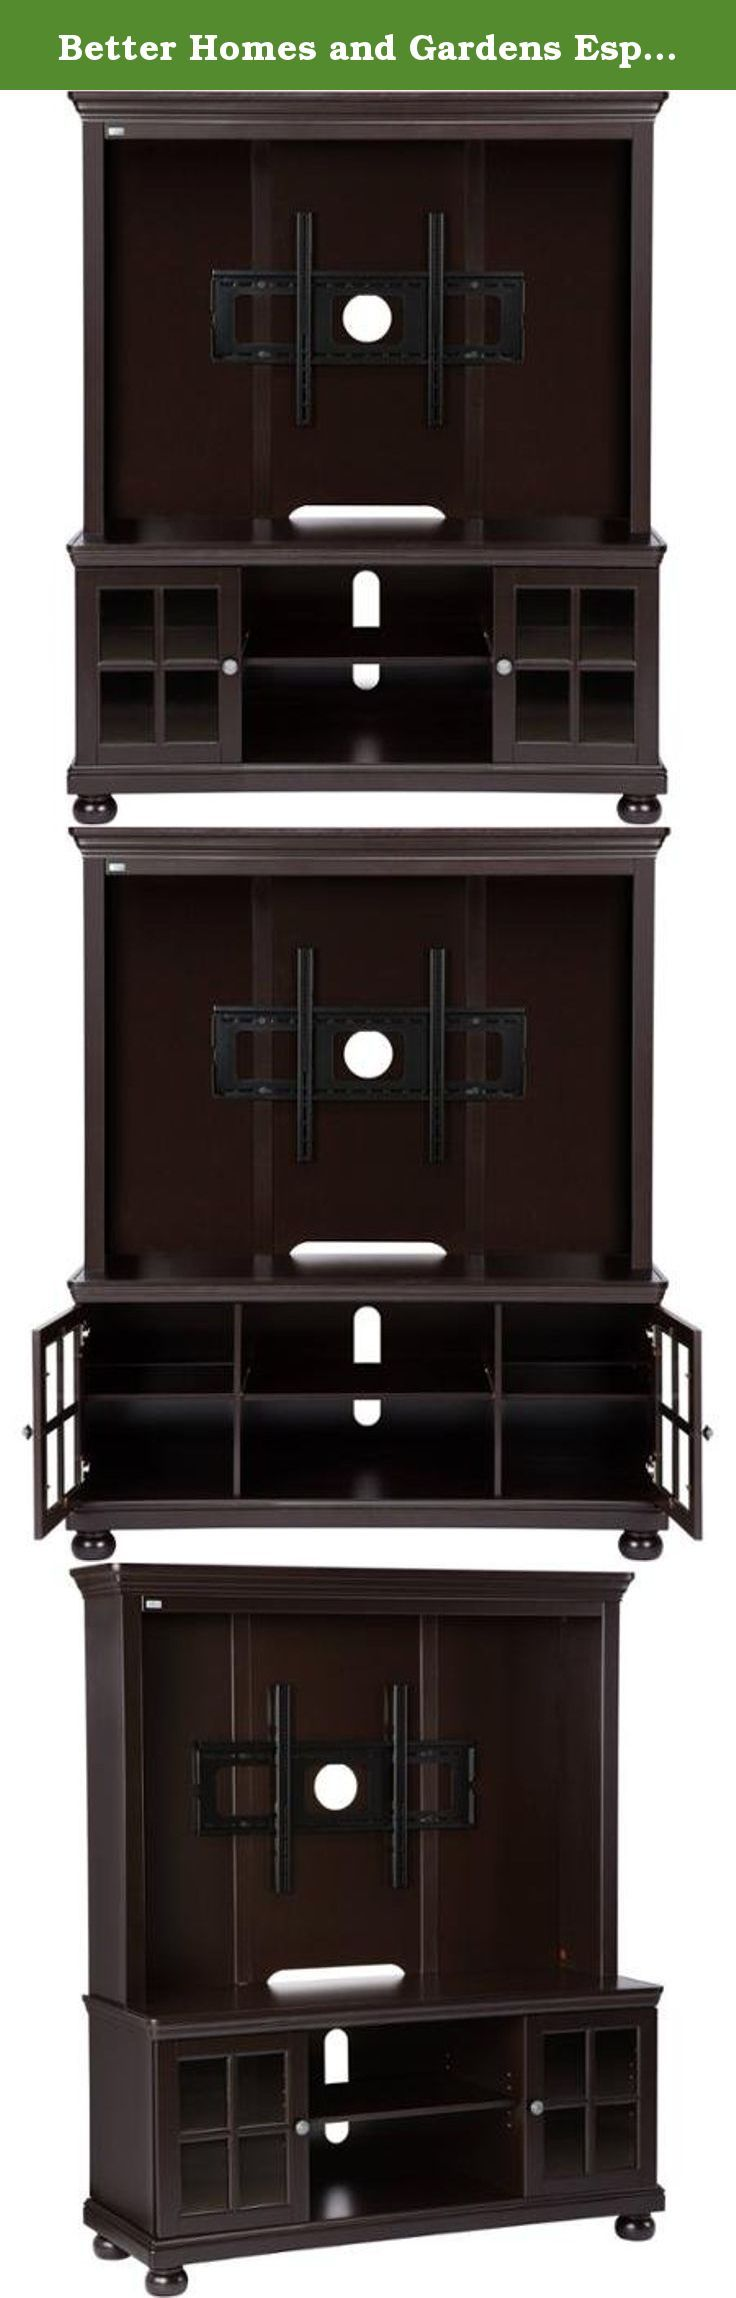 """Better Homes and Gardens Espresso TV Stand with Hutch, for TVs up to 50"""". Add some functional style to your home with the Better Homes and Gardens Espresso TV Stand with Hutch. Easy to assemble, it holds most 50"""" flat panel TVs with ease. The Better Homes and Gardens TV Stand also has plenty of additional room to store your media players, gaming consoles, DVD collections and more. The glass-front cabinets keep the dust away from sensitive equipment, while the hutch provides a great place…"""